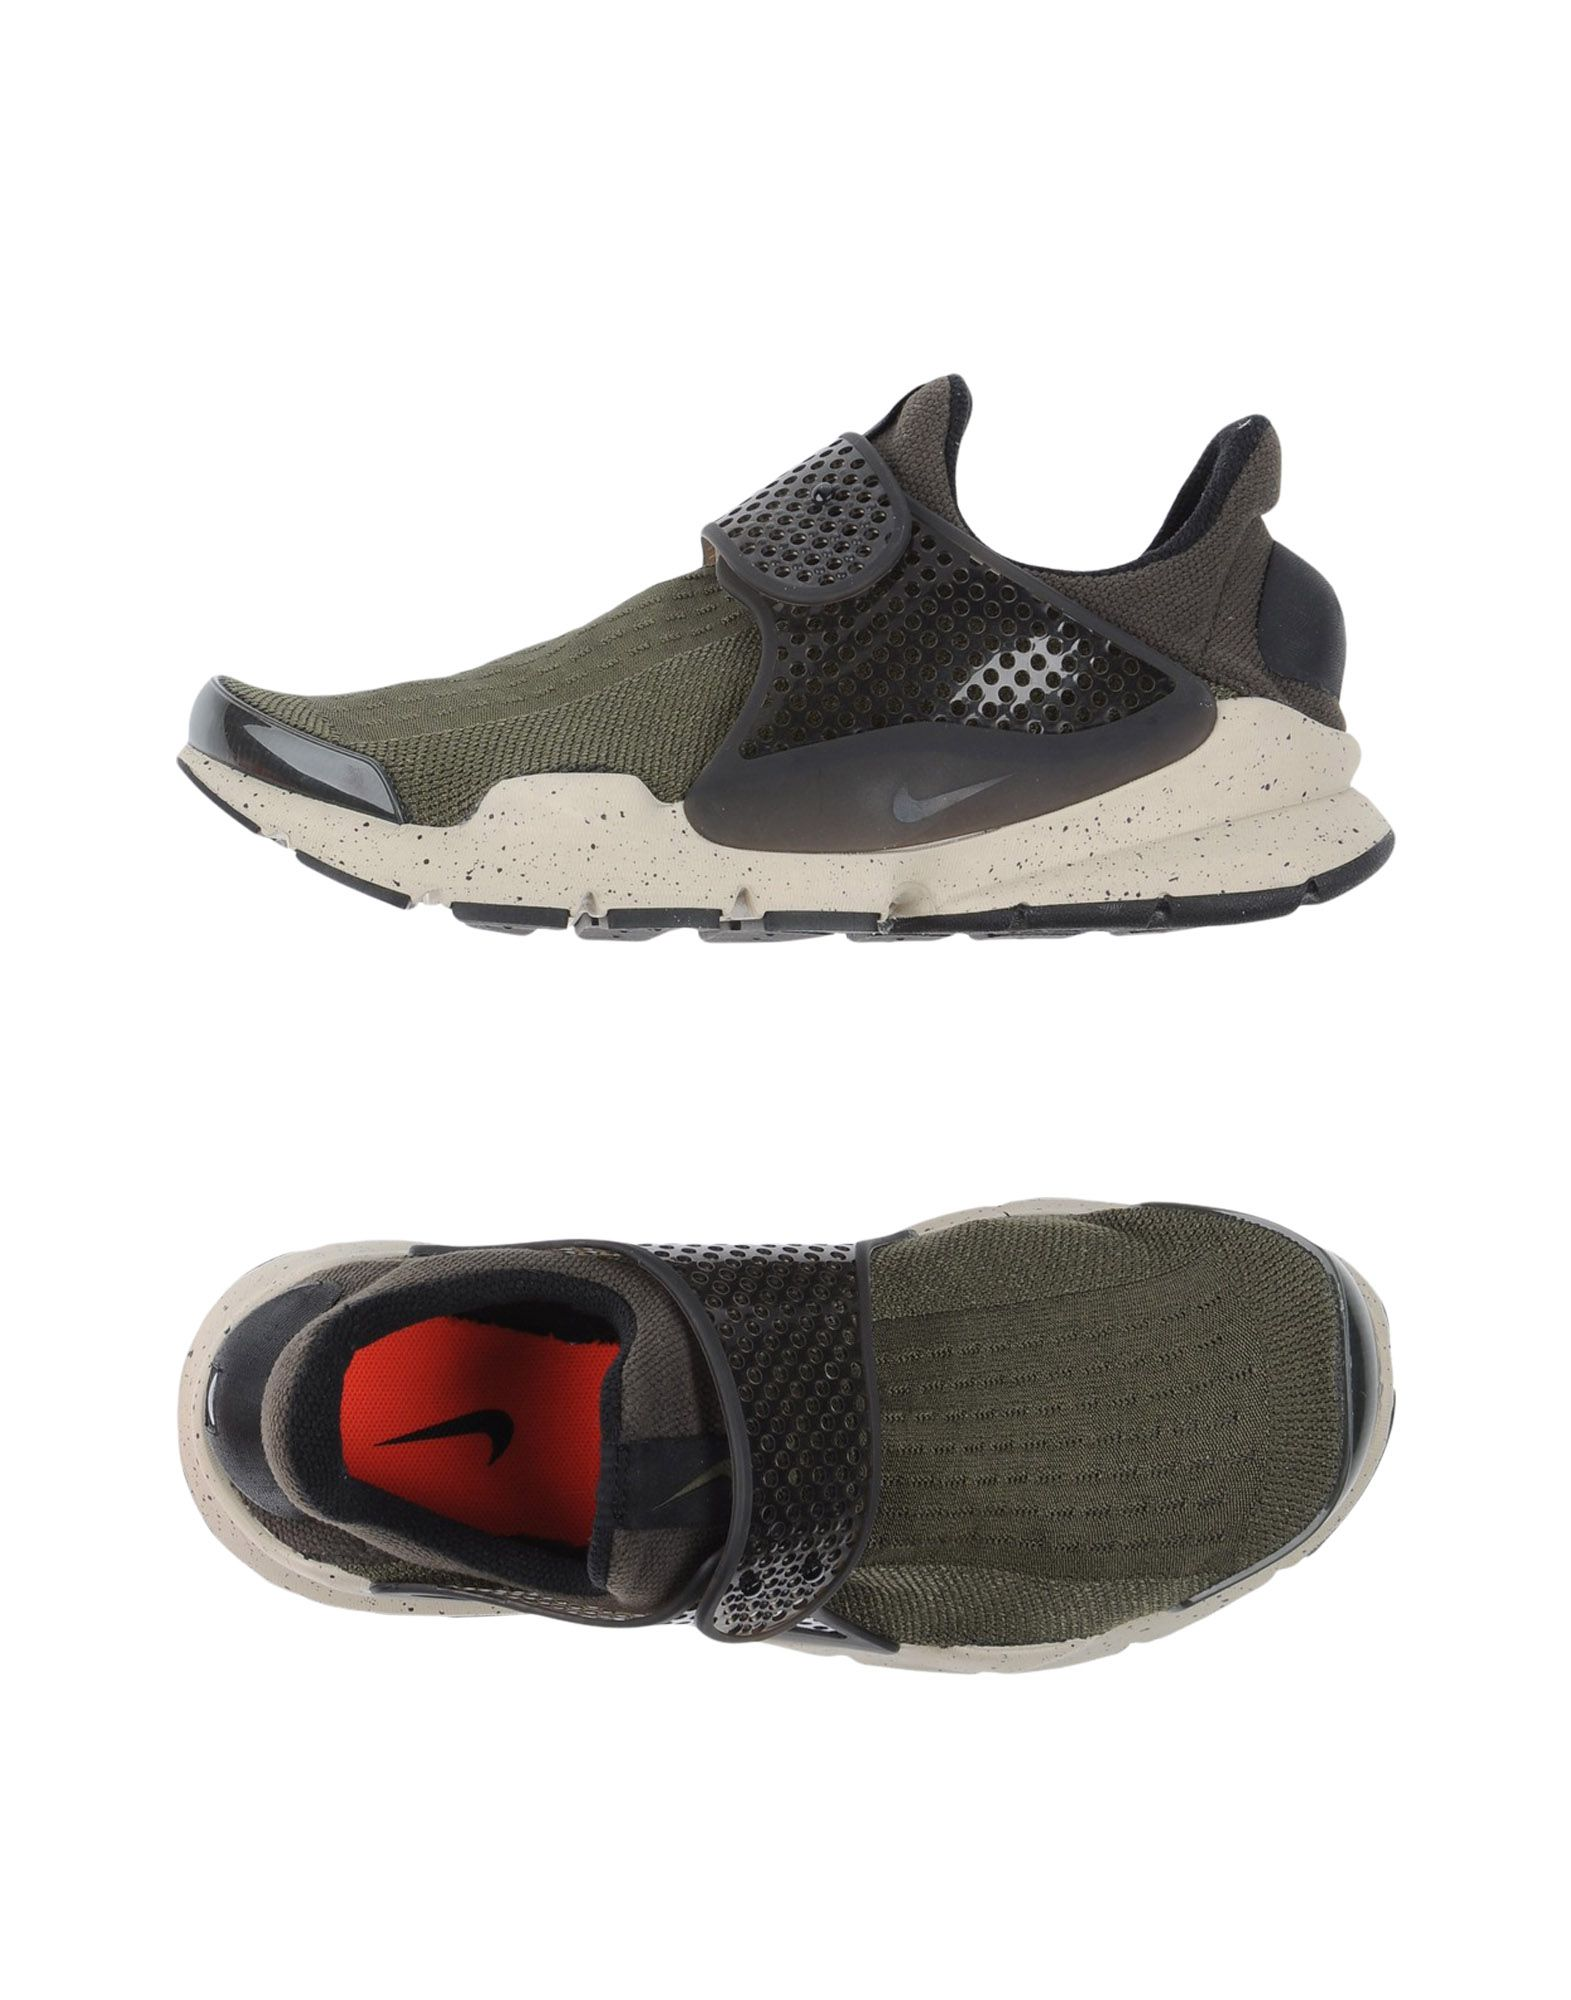 Sneakers Nike Homme Vert - Sneakers Nike  Vert Homme militaire Chaussures casual sauvages 0f35f8